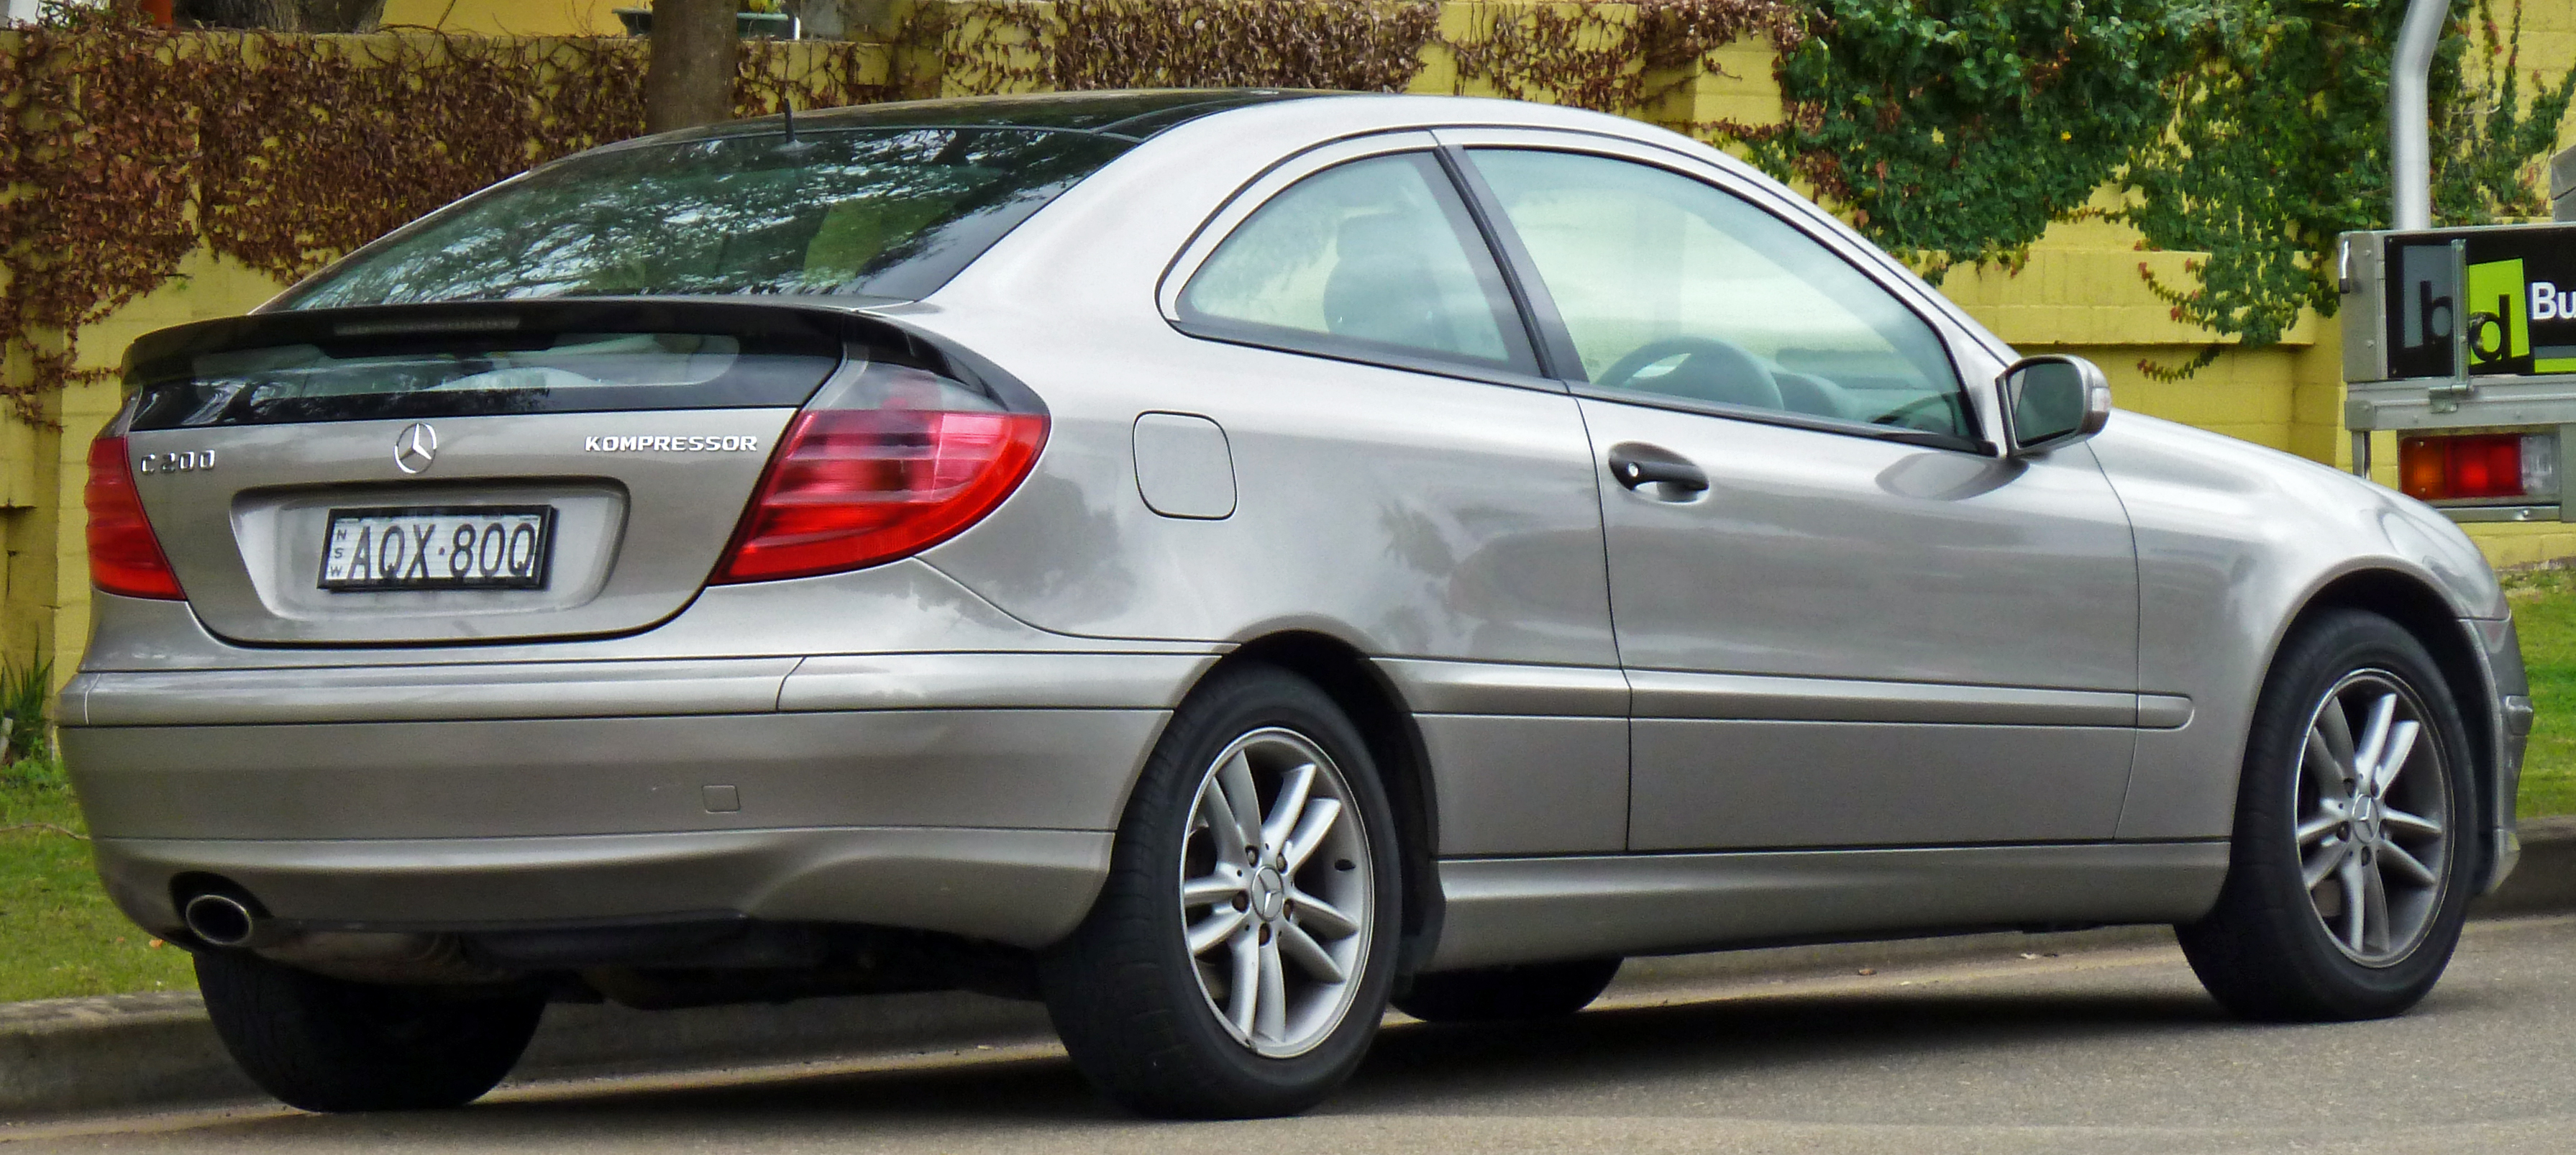 mercedes-benz c 200 kompressor #3